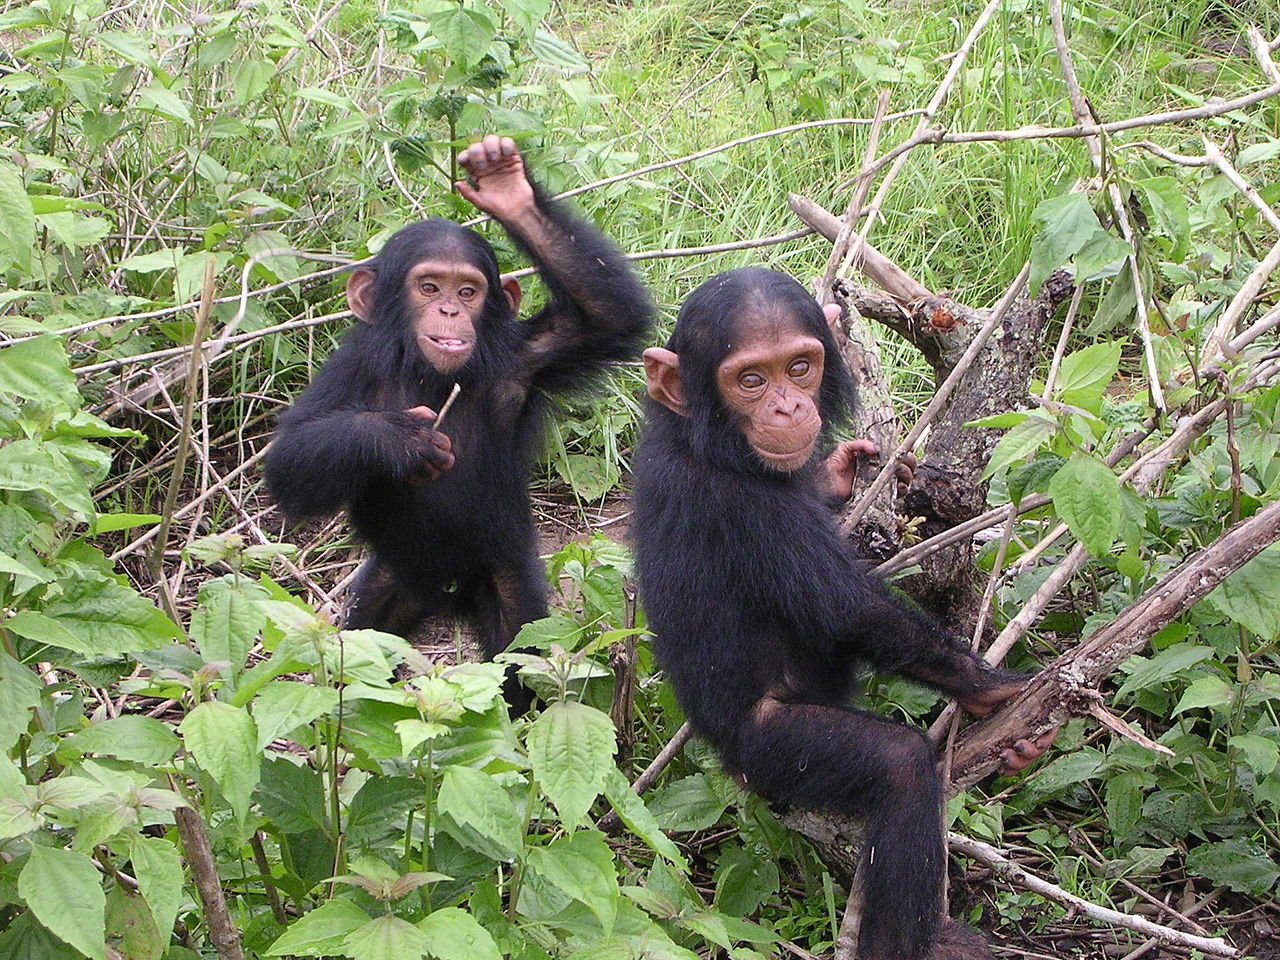 Chimpanzees are forcing us to redefine what it means to be